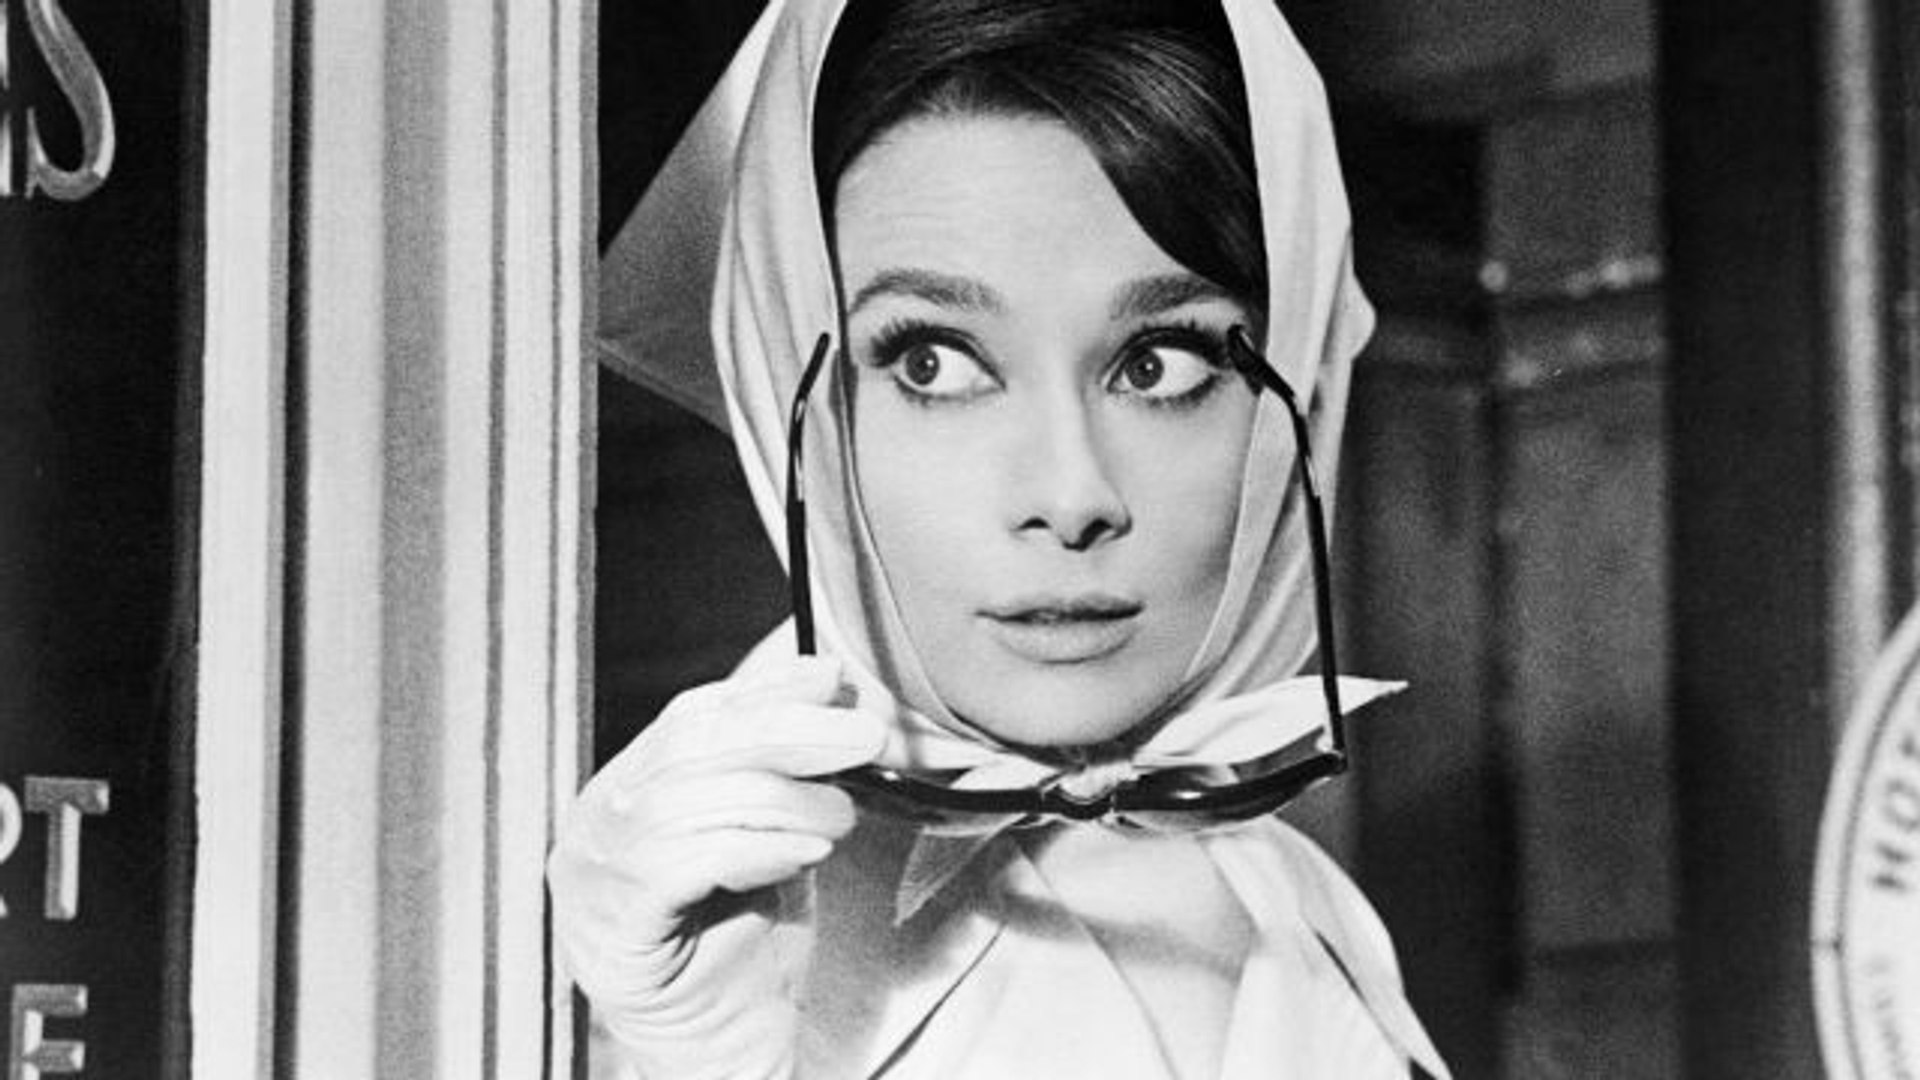 Throwback Thursdays with Tim Blanks - Audrey Hepburn Honors Friend Hubert de Givenchy at His Career